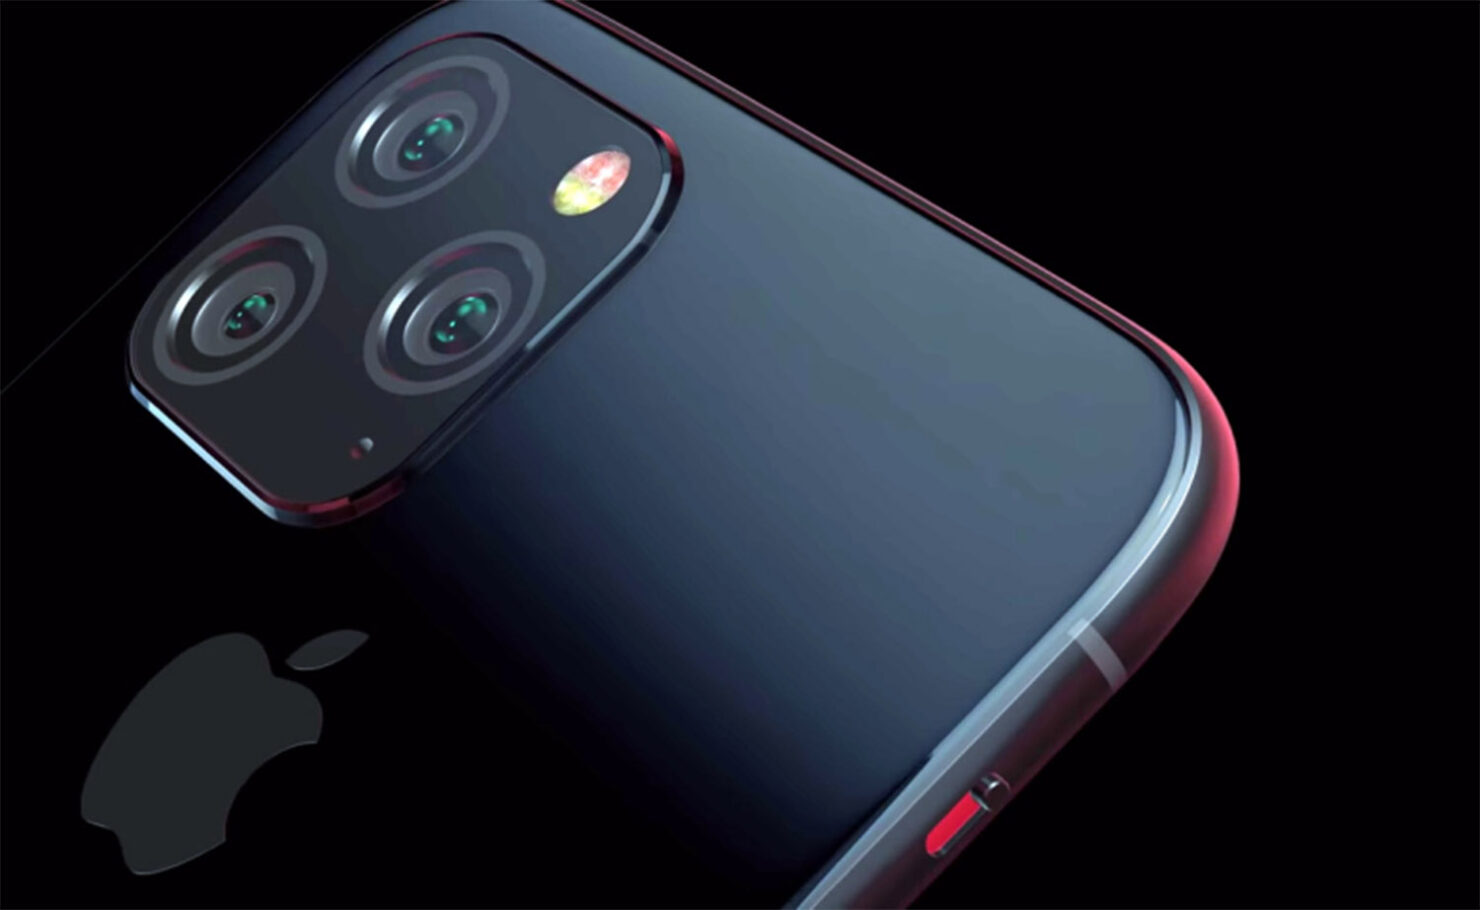 A fresh Bloomberg report highlights new 2019 iPhone 11 features such as improved shatter resistance, multi-angle Face ID and more